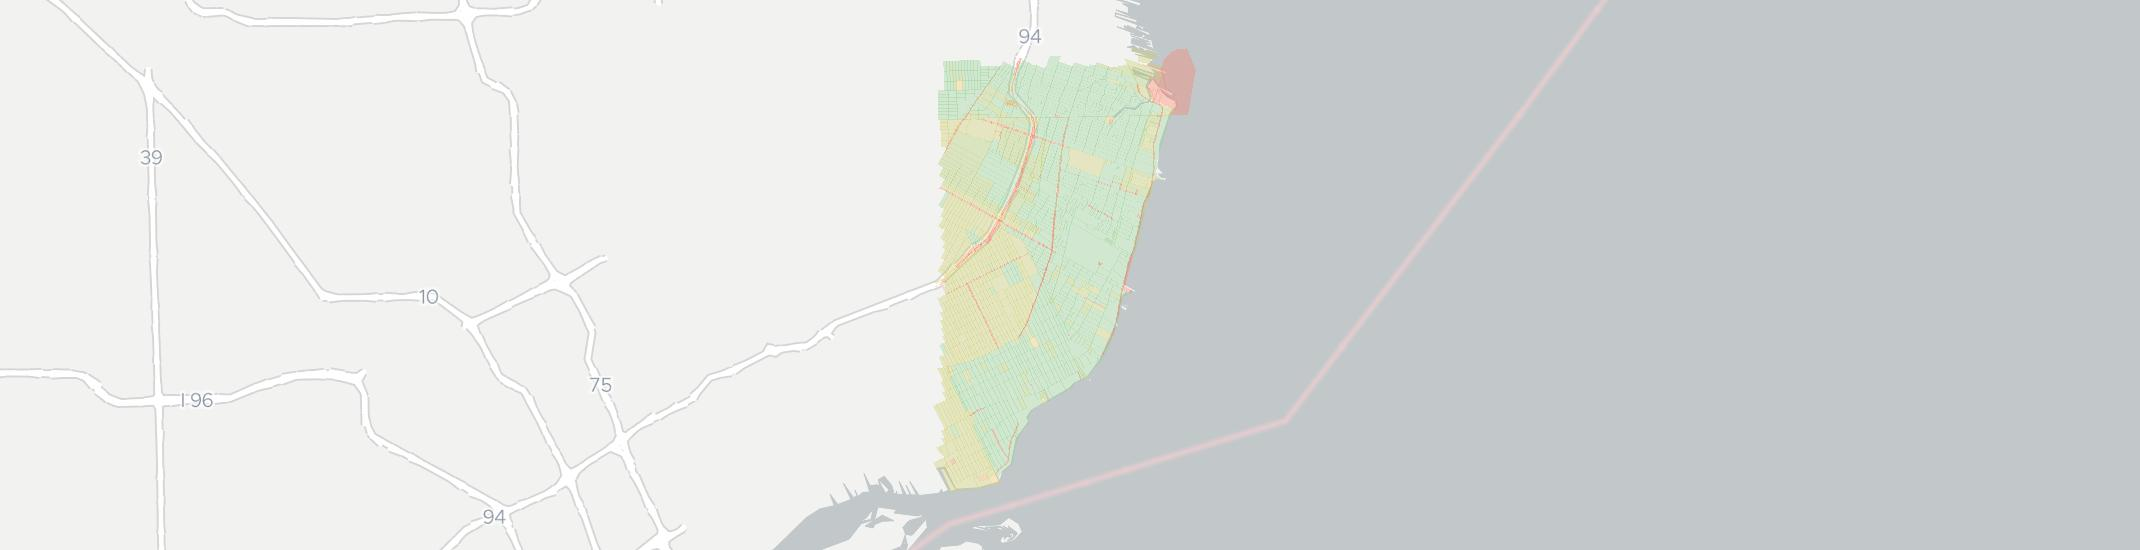 Grosse Point Michigan Map.Internet Providers In Grosse Pointe Compare 17 Providers